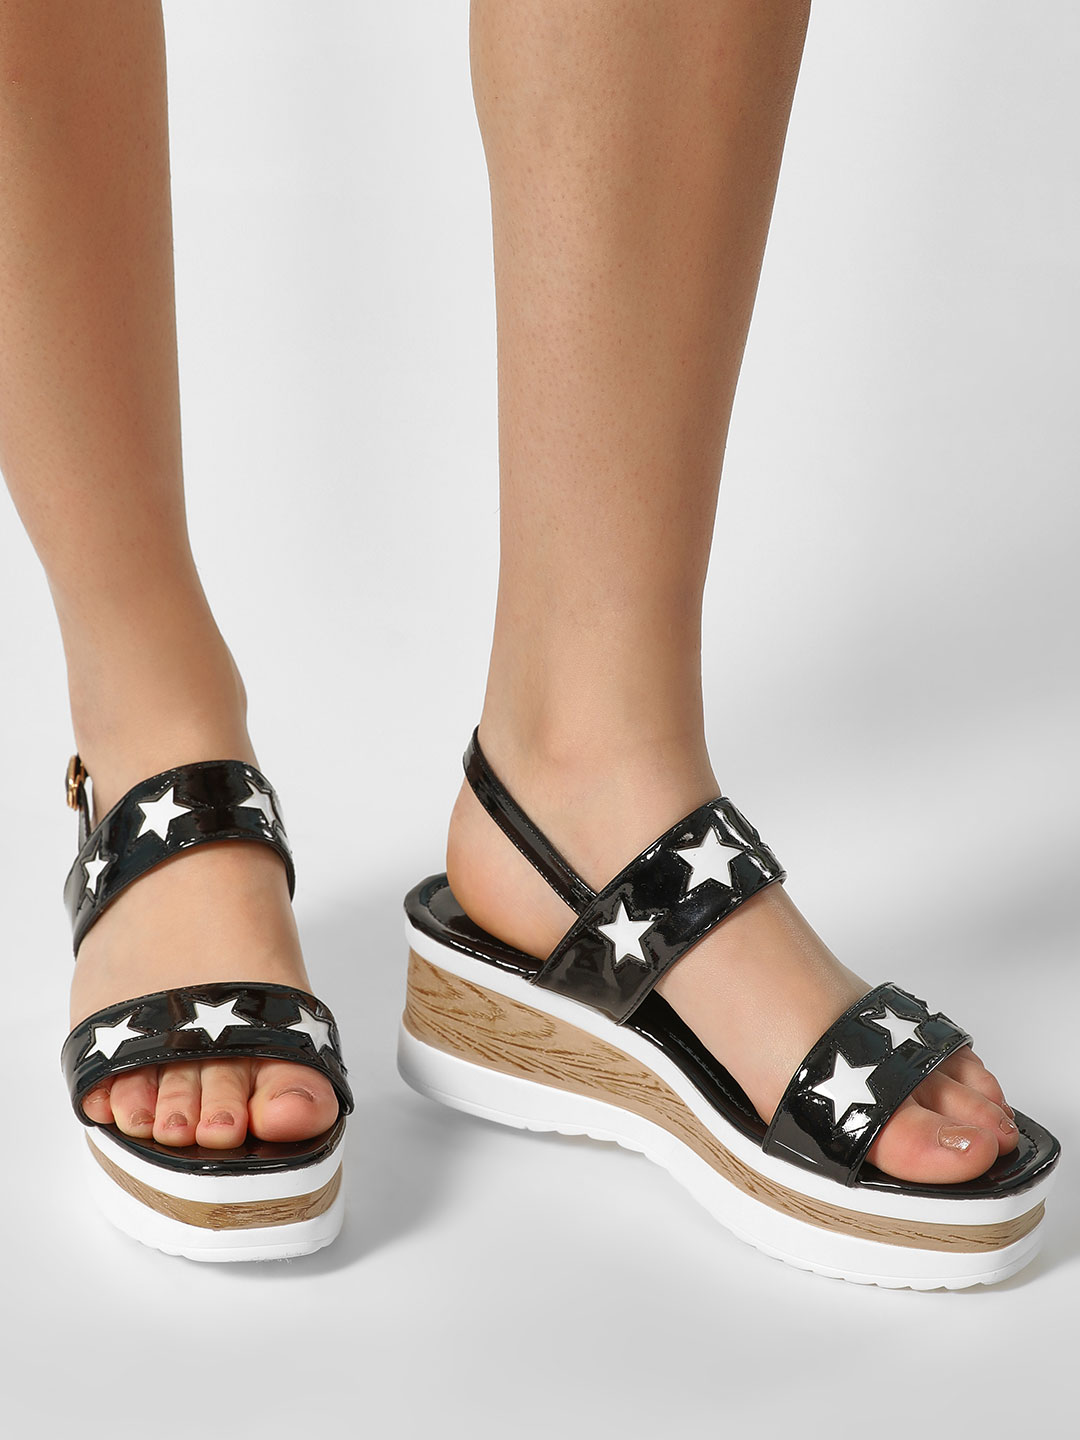 My Foot Couture Black Star Motif Glossy Wedge Sandals 1